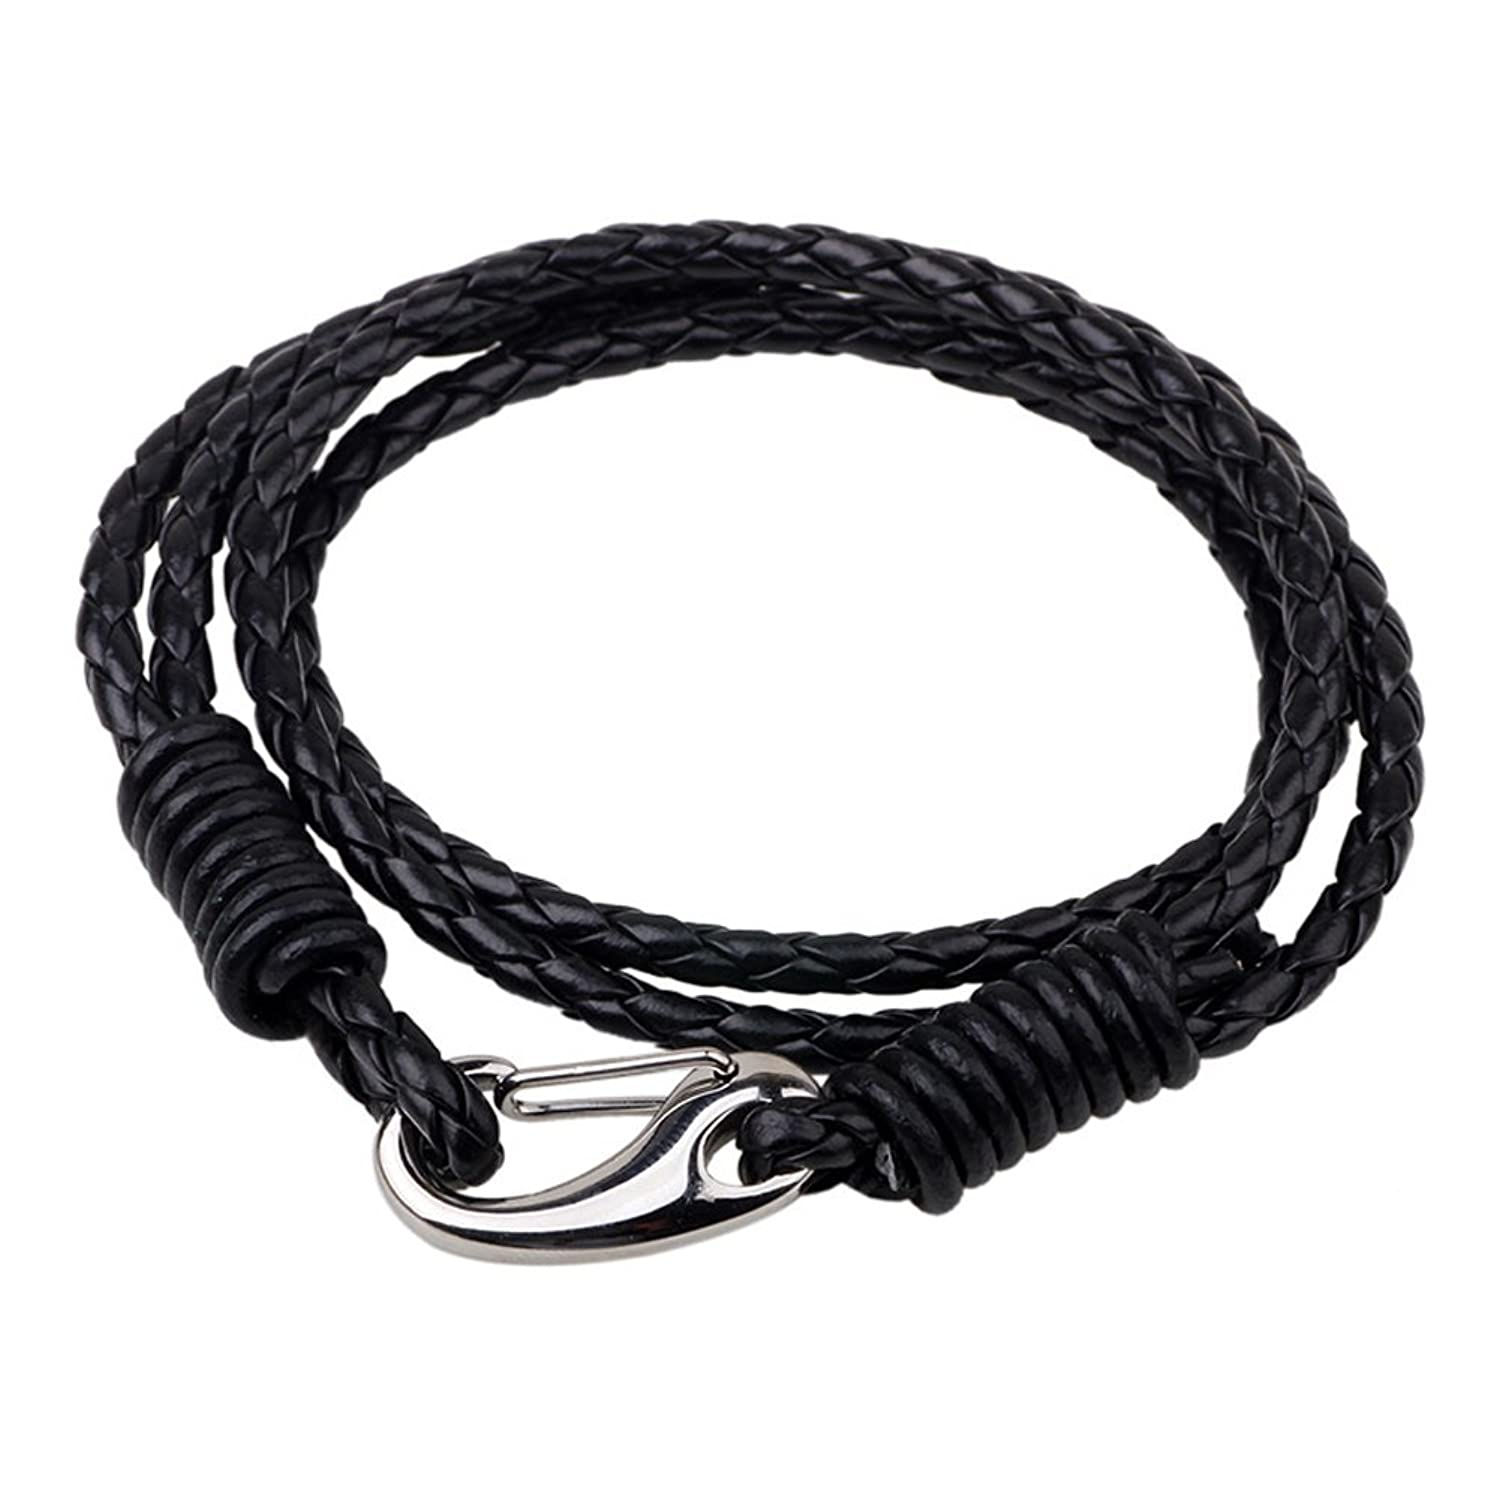 Braided Leather Bracelet Set  Black Brown Genuine Leather Wrap Bangle For  Men Women Kids With